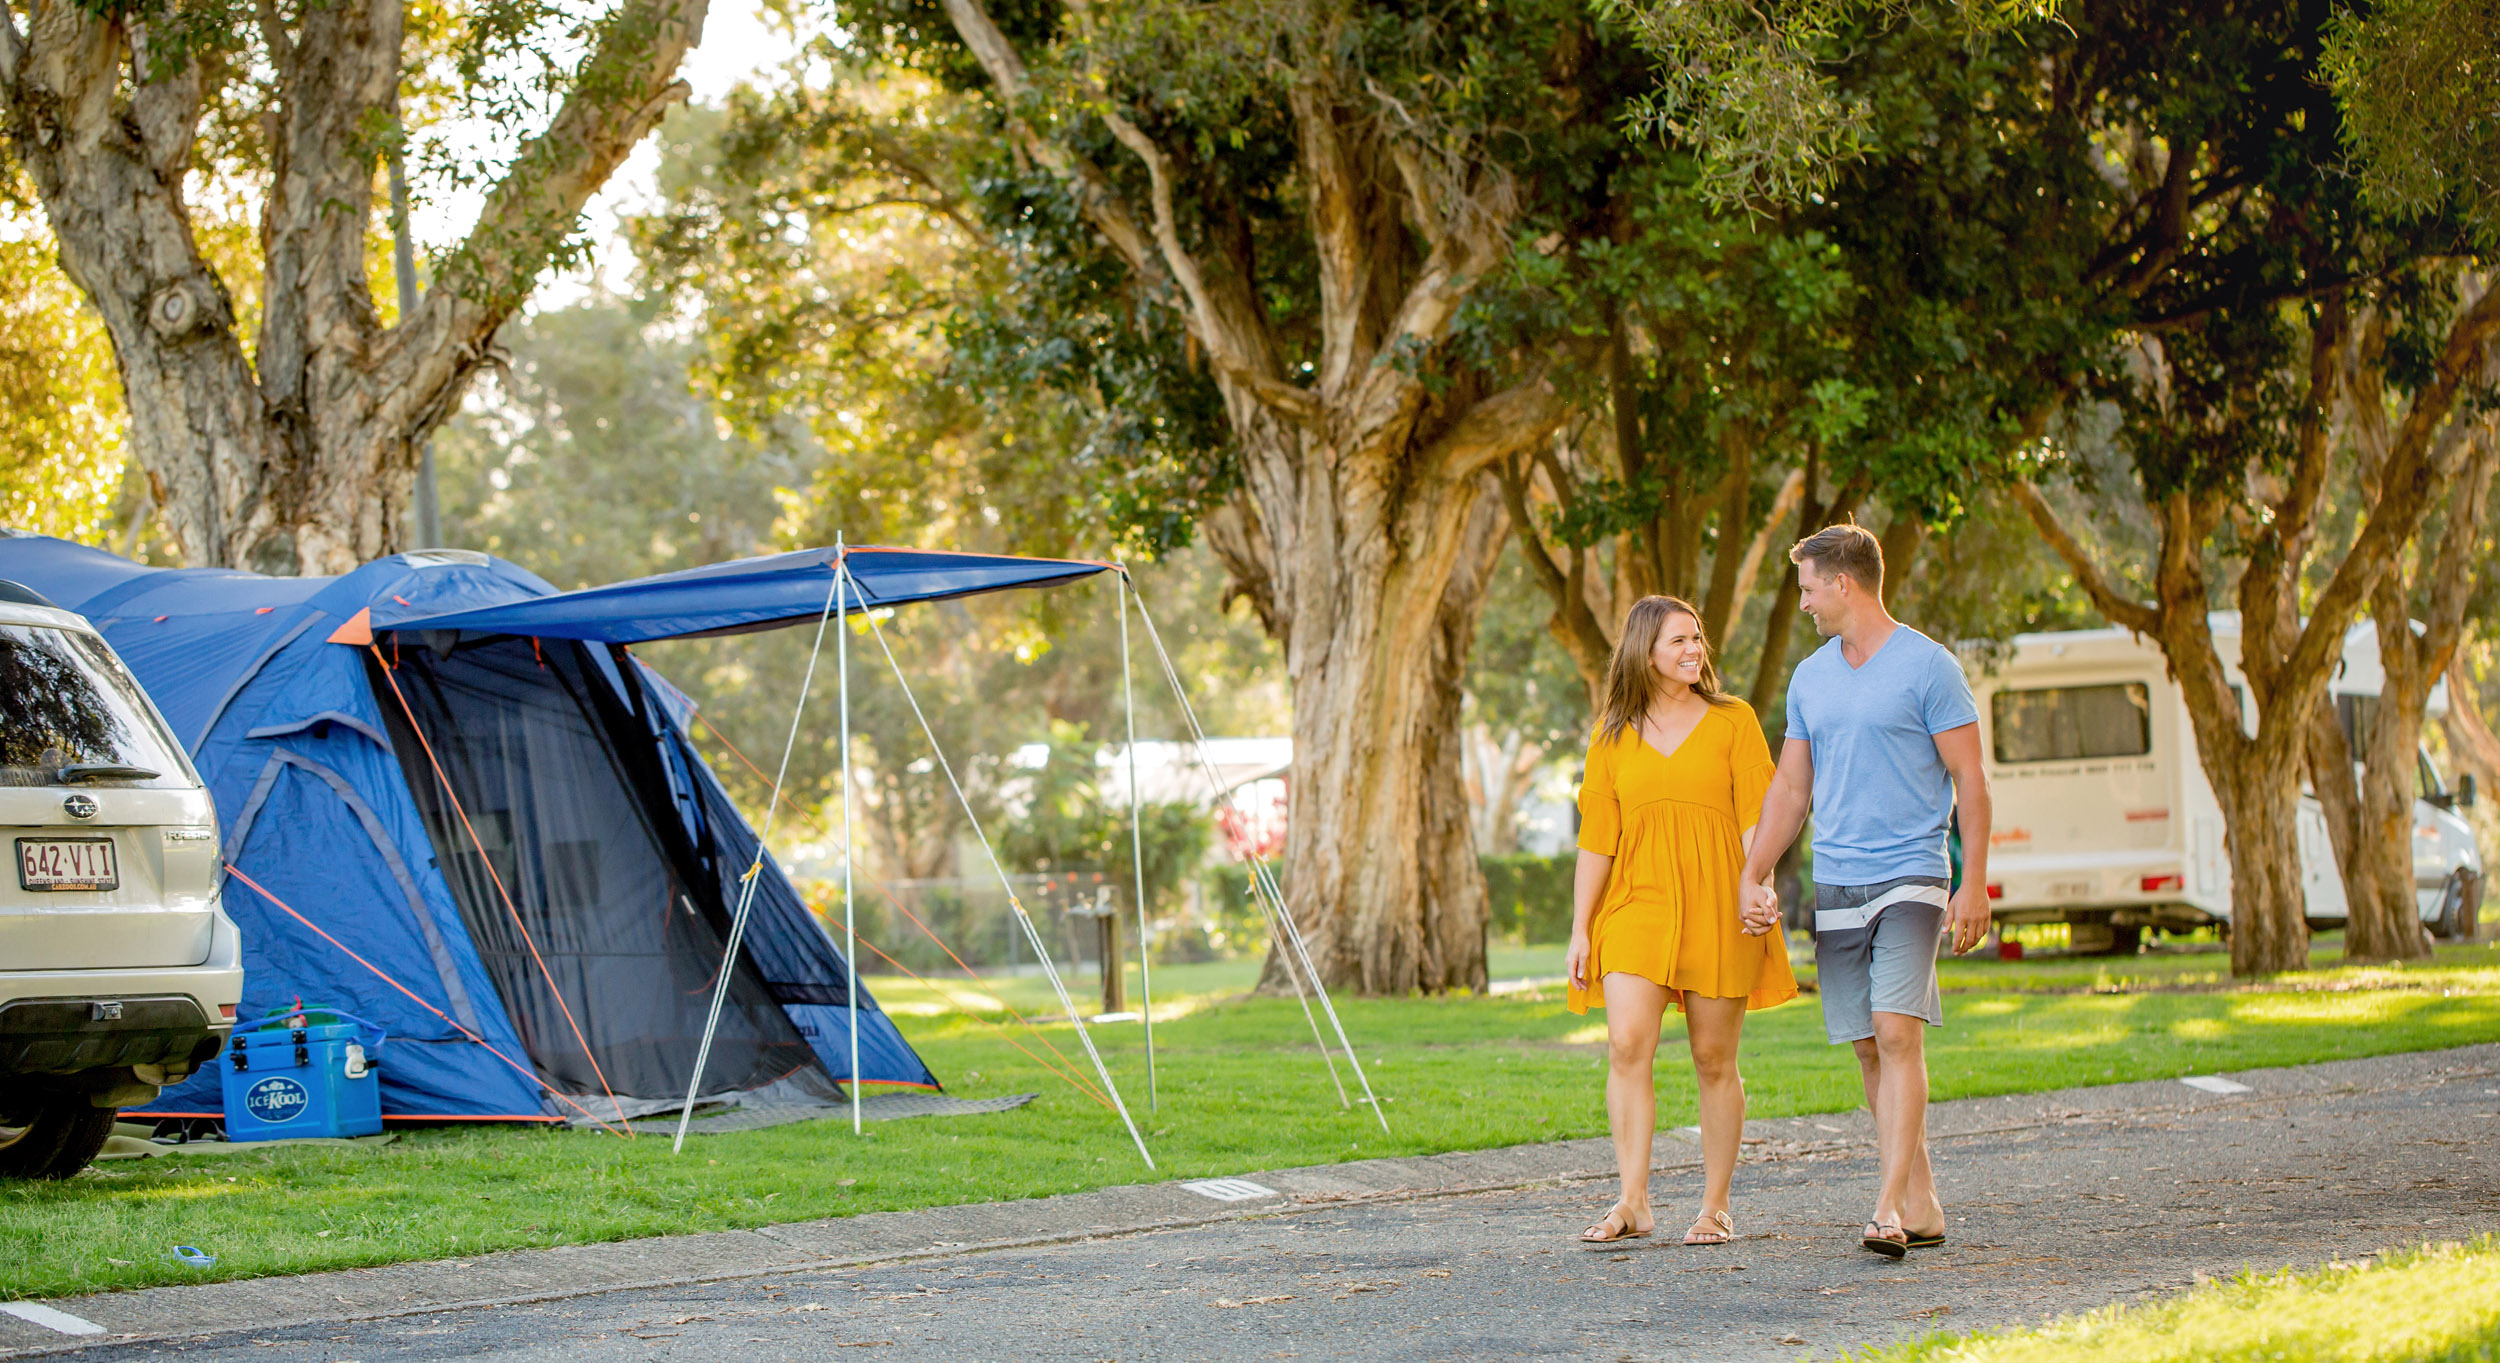 holiday-park-photography-camping-nsw.jpg